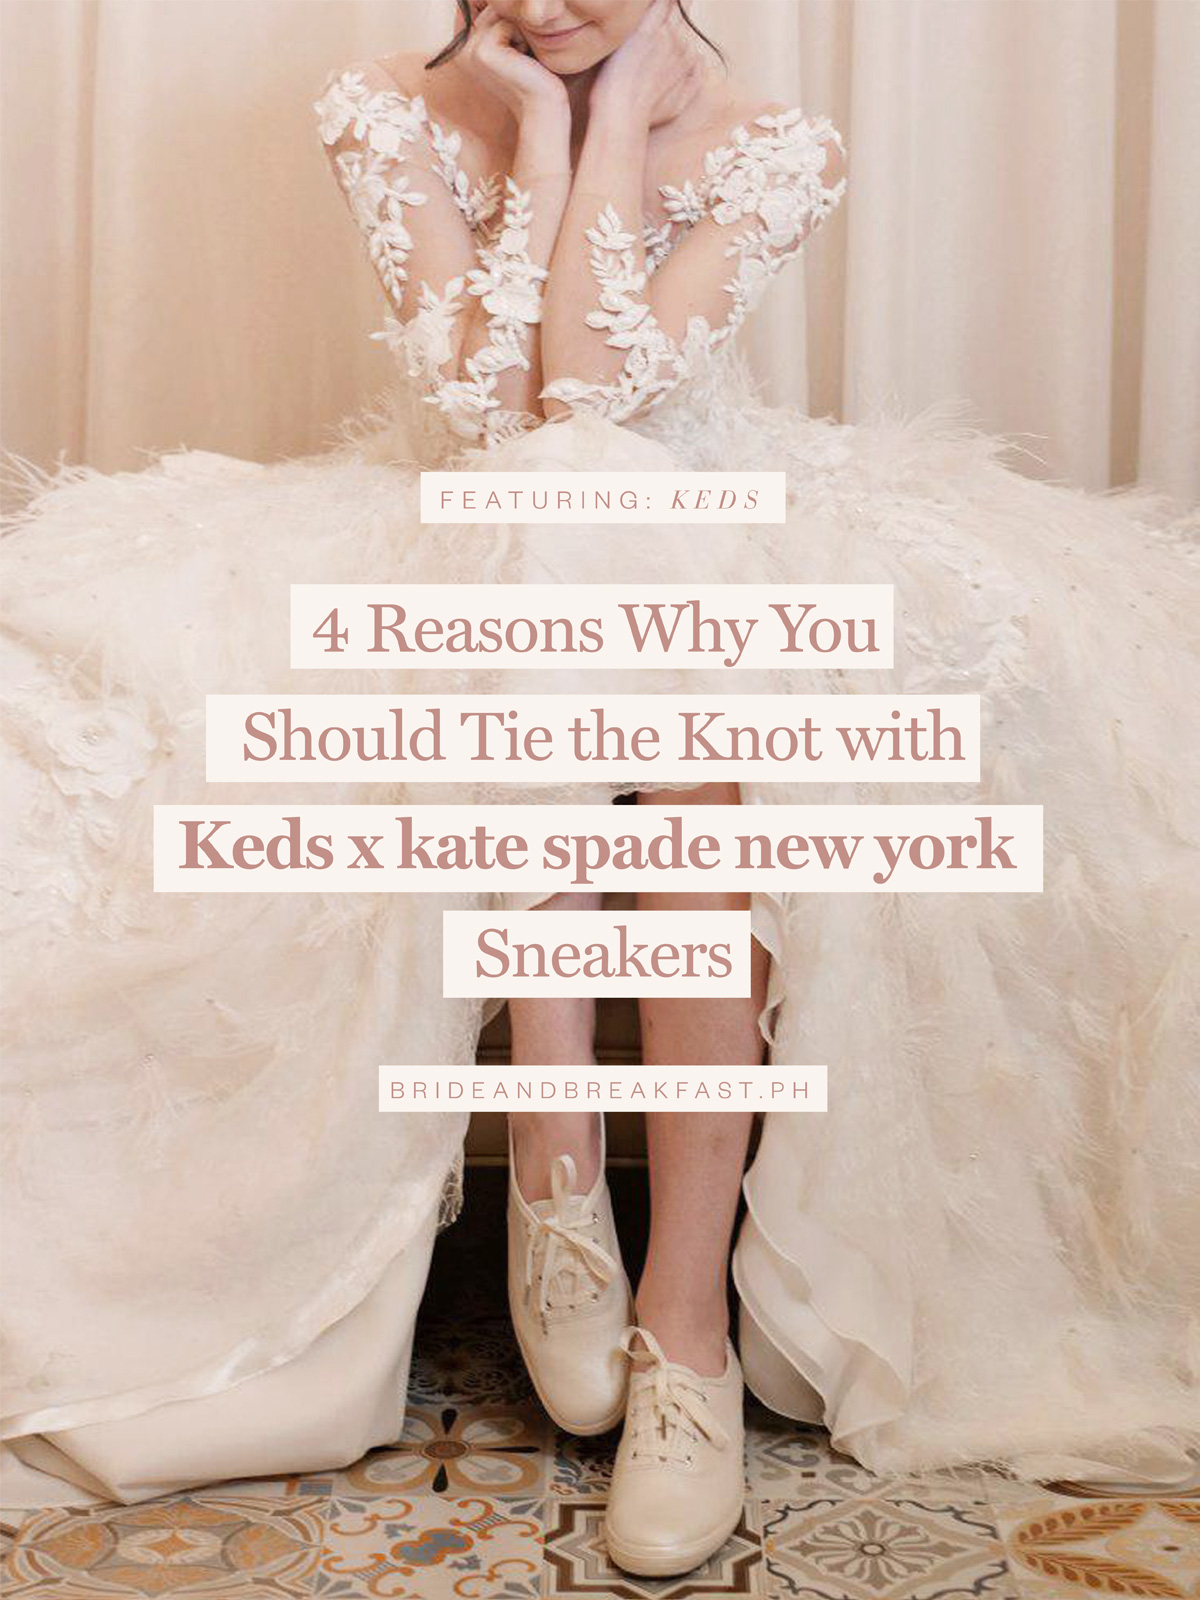 4 Reasons Why You Should Tie the Knot with Kids x Kate spade New York Sneakers